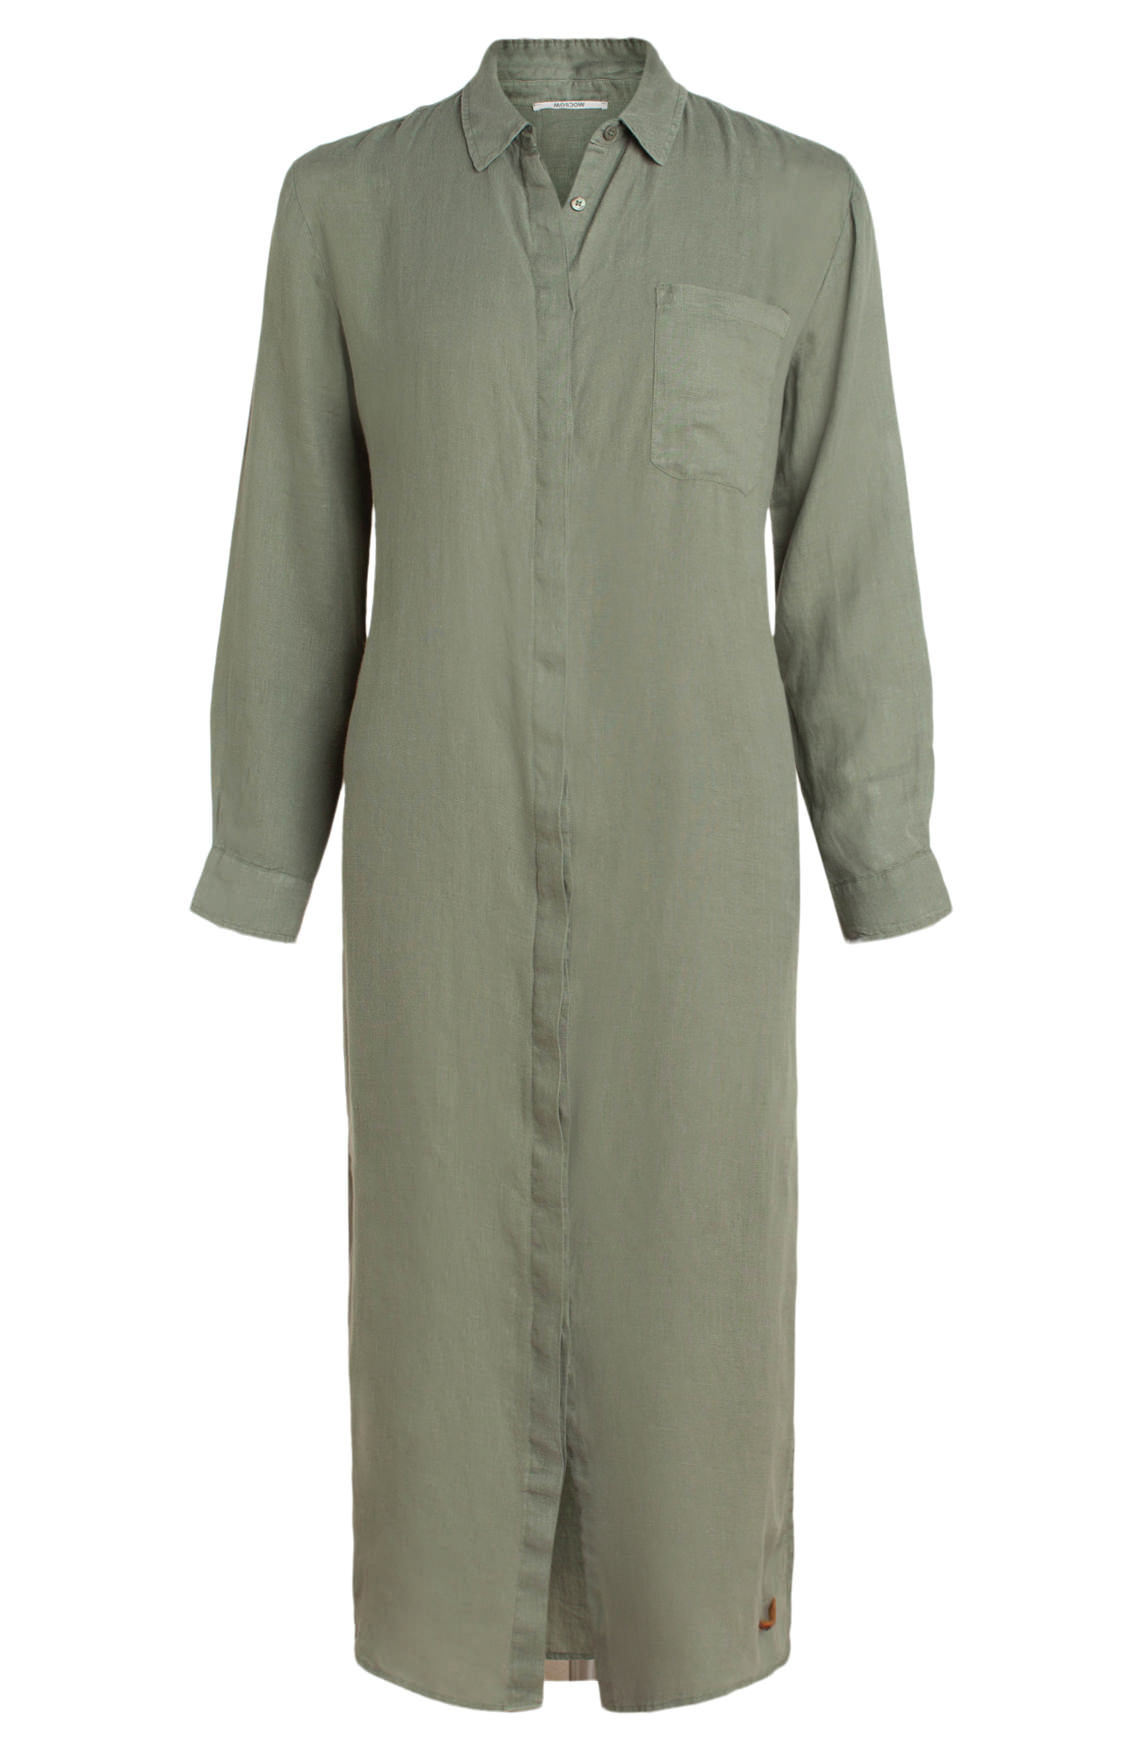 Moscow Dames Long shirt dress groen